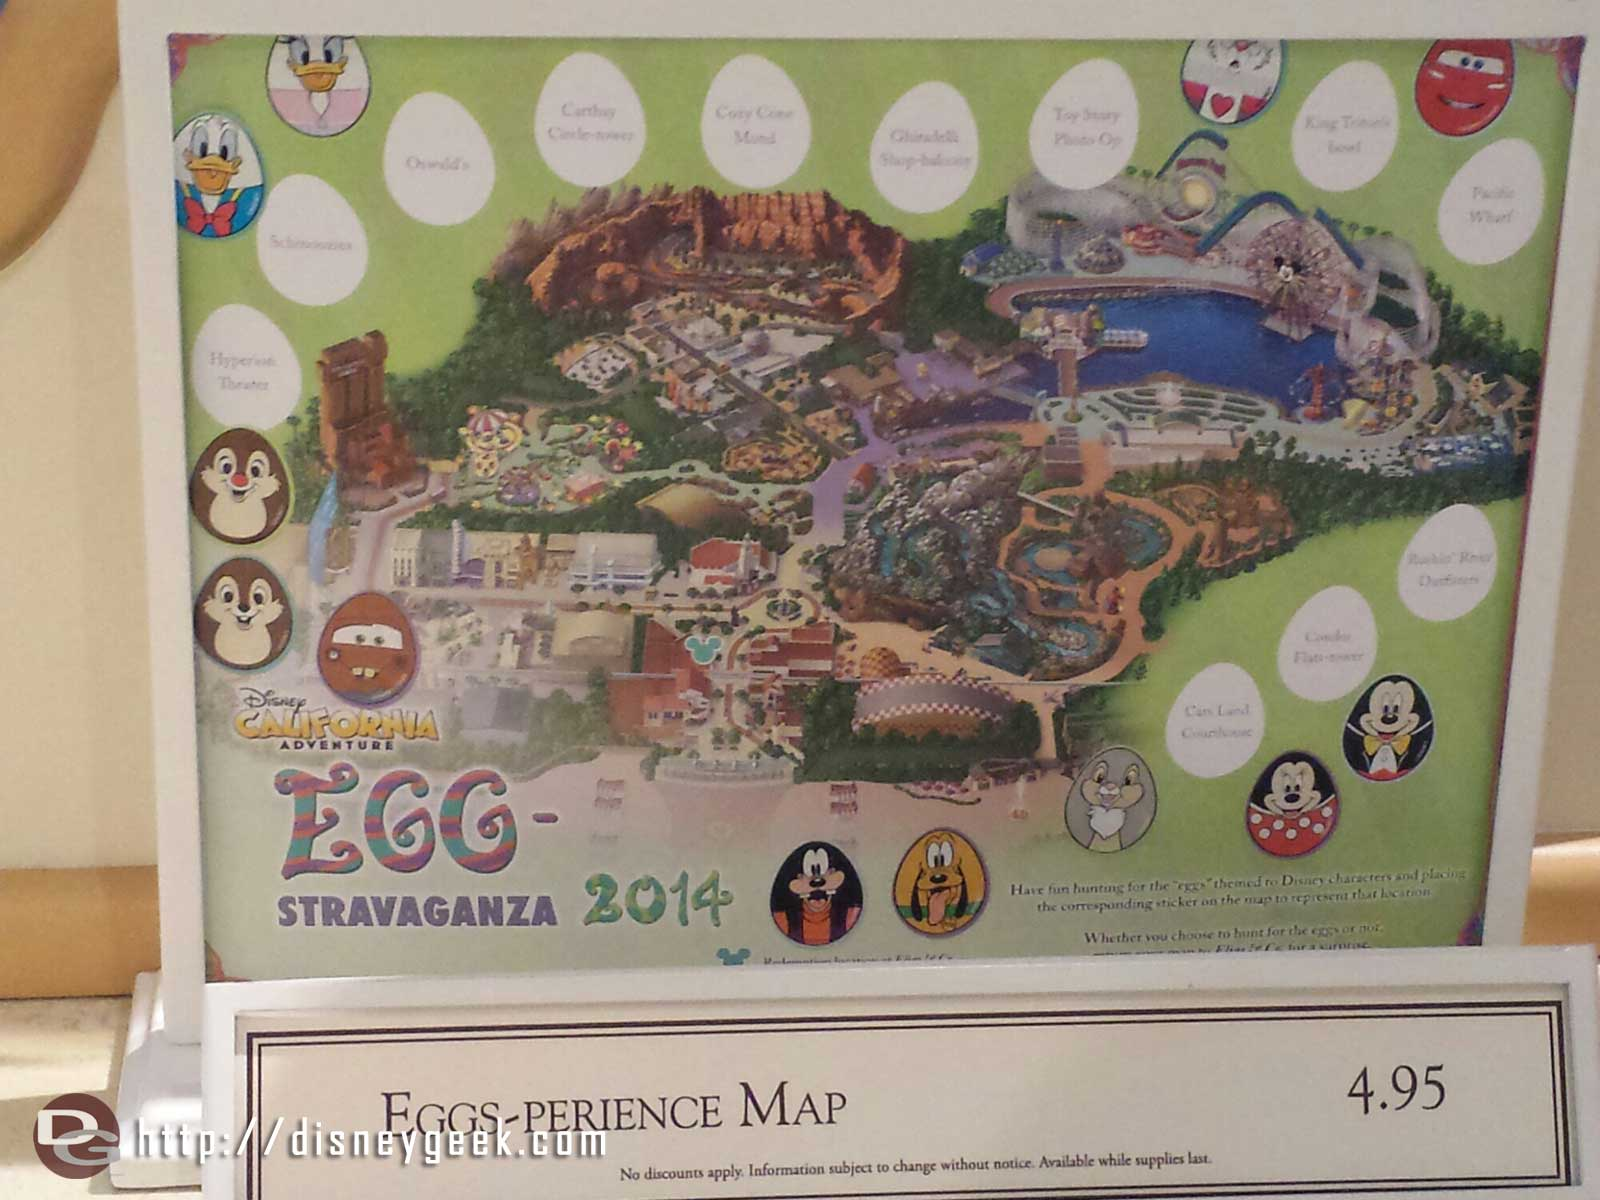 DCA also has an egg-perience going on.  Here is the map